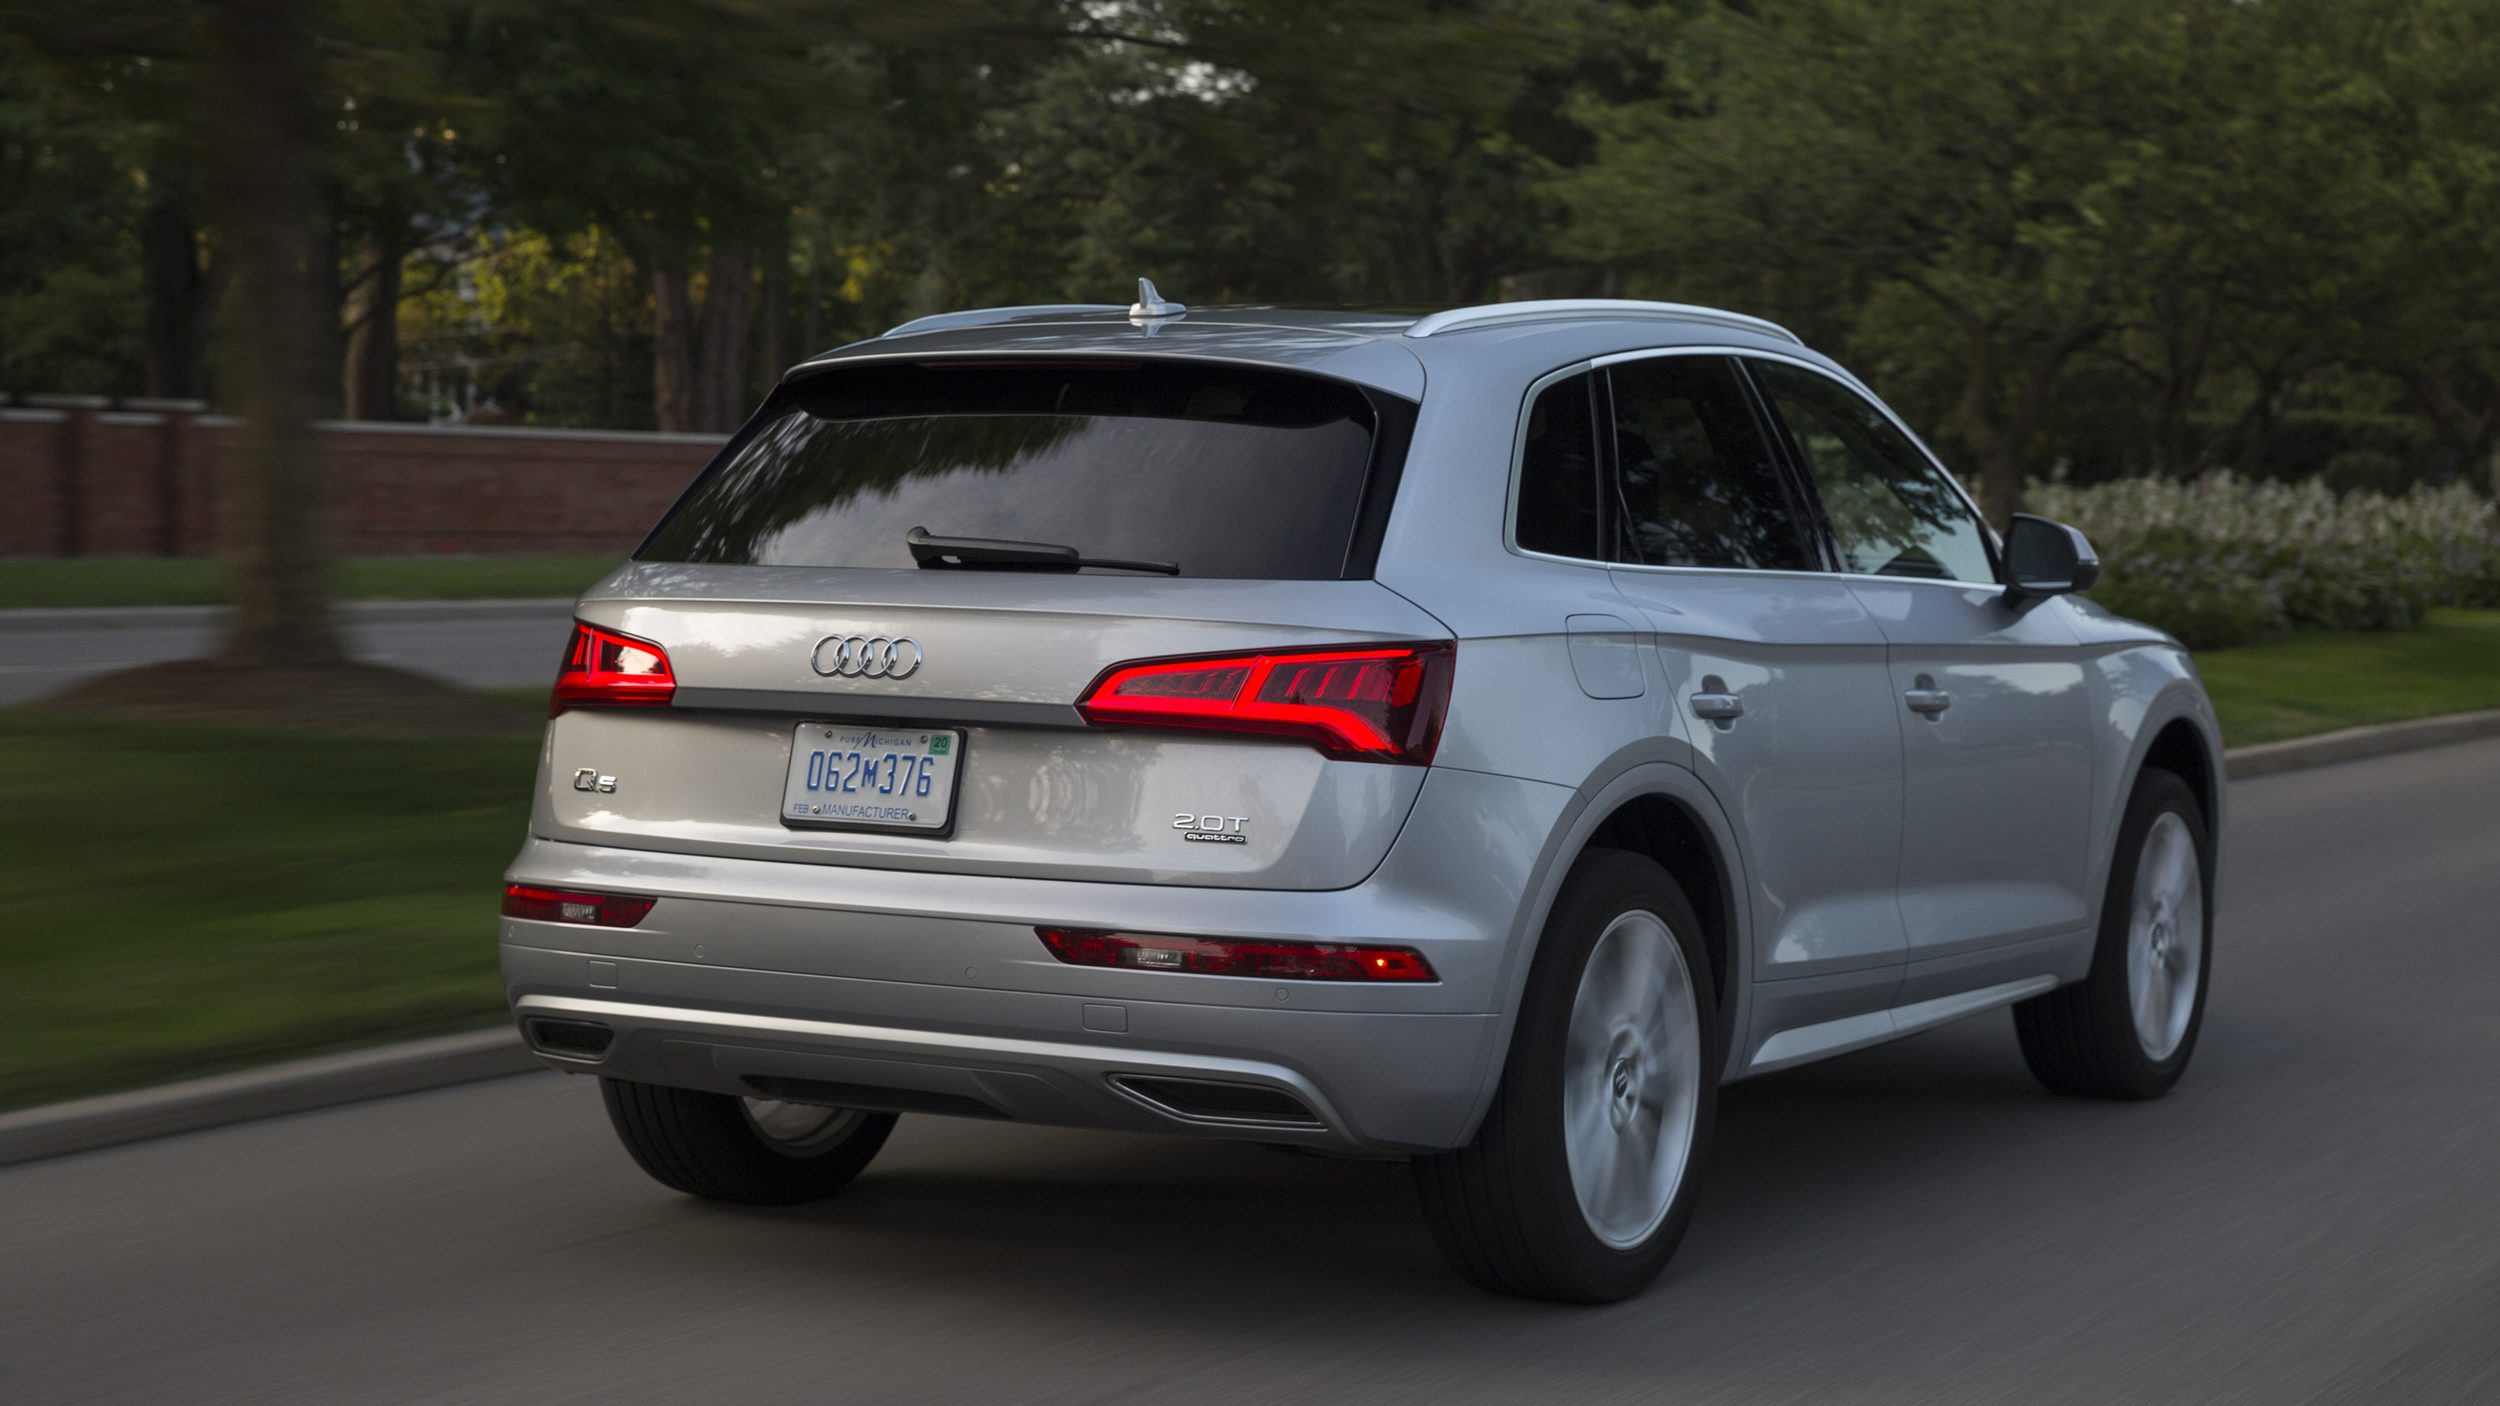 Certified Pre Owned Audi Q5 >> 2018 Audi Q5 crossover quick spin review | Autoblog